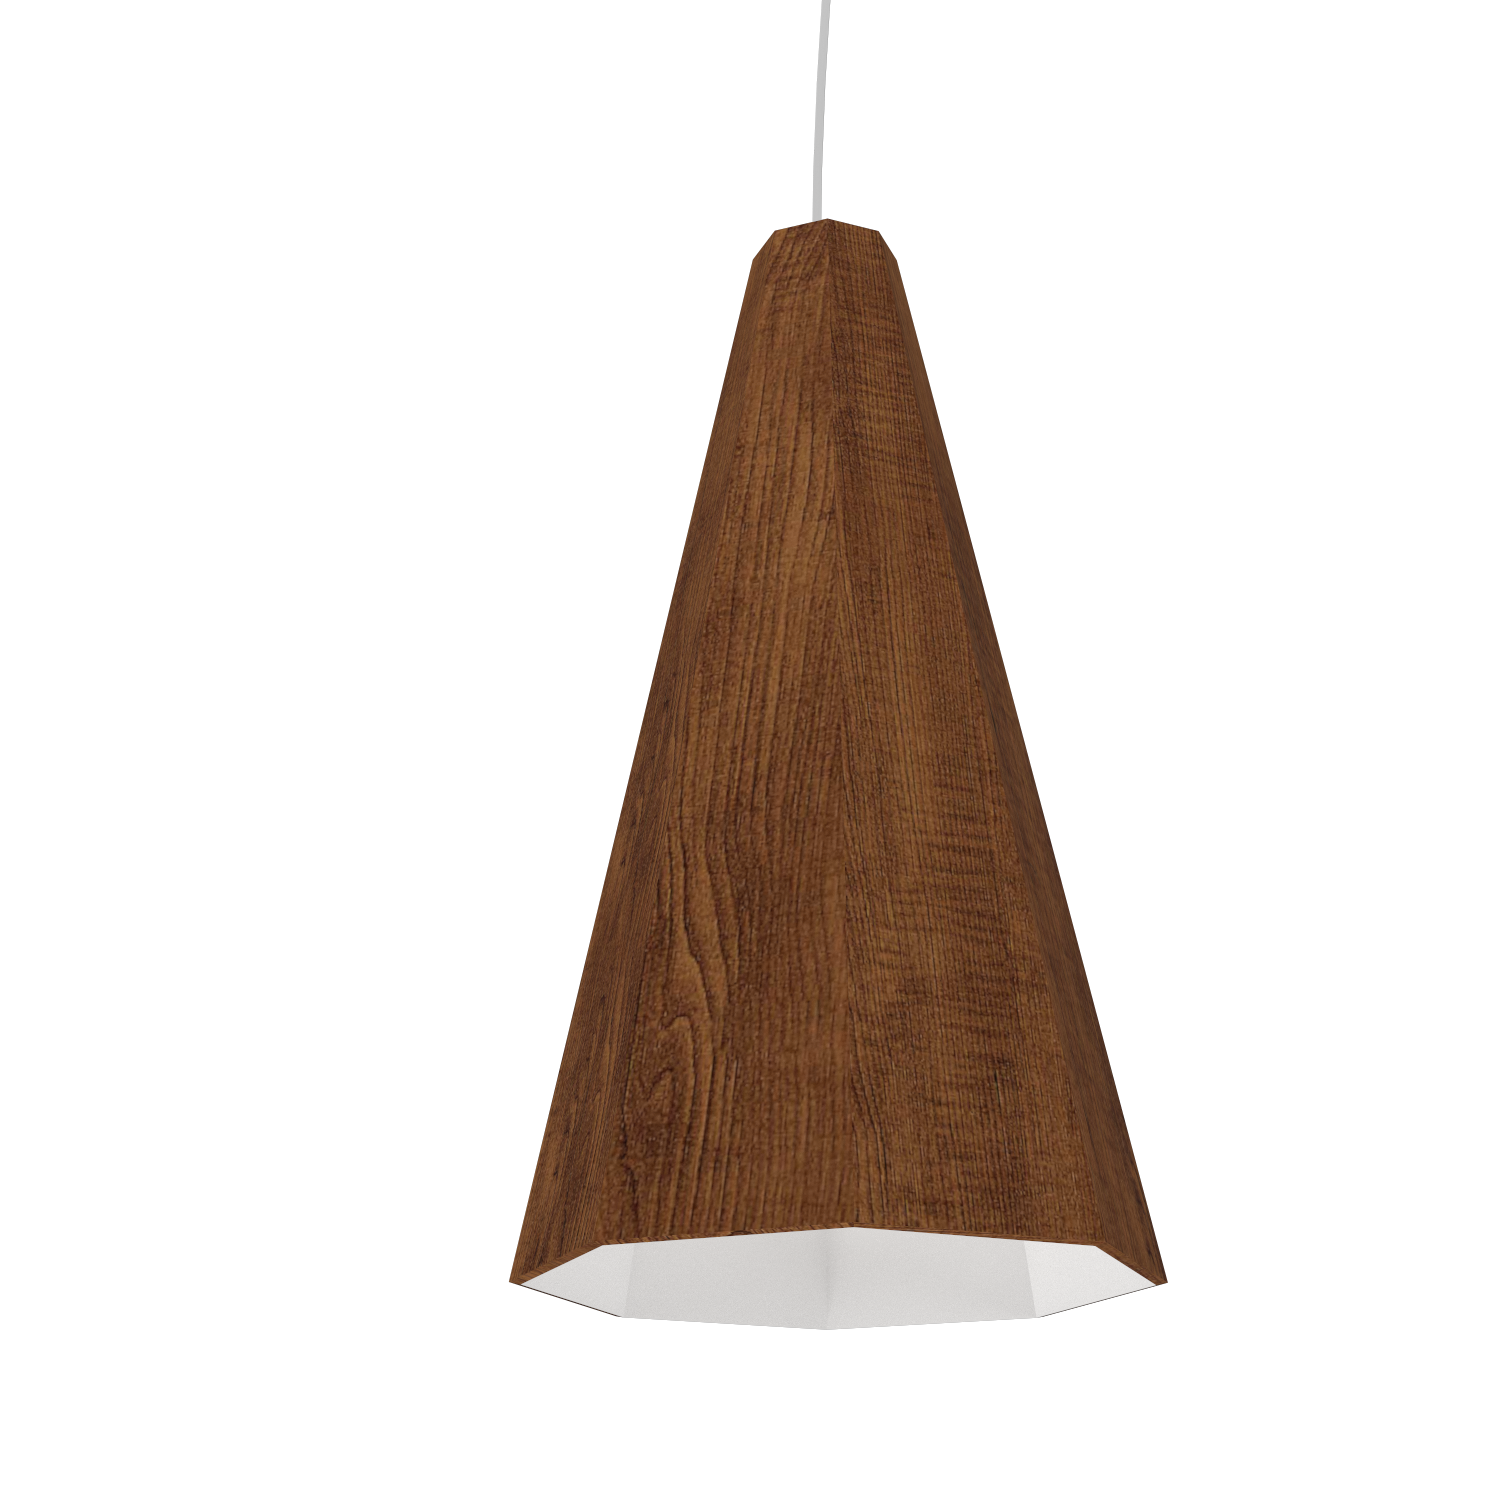 Pendant Lamp Accord Facetado 1231 - Facetada Line Accord Lighting | 06. Imbuia